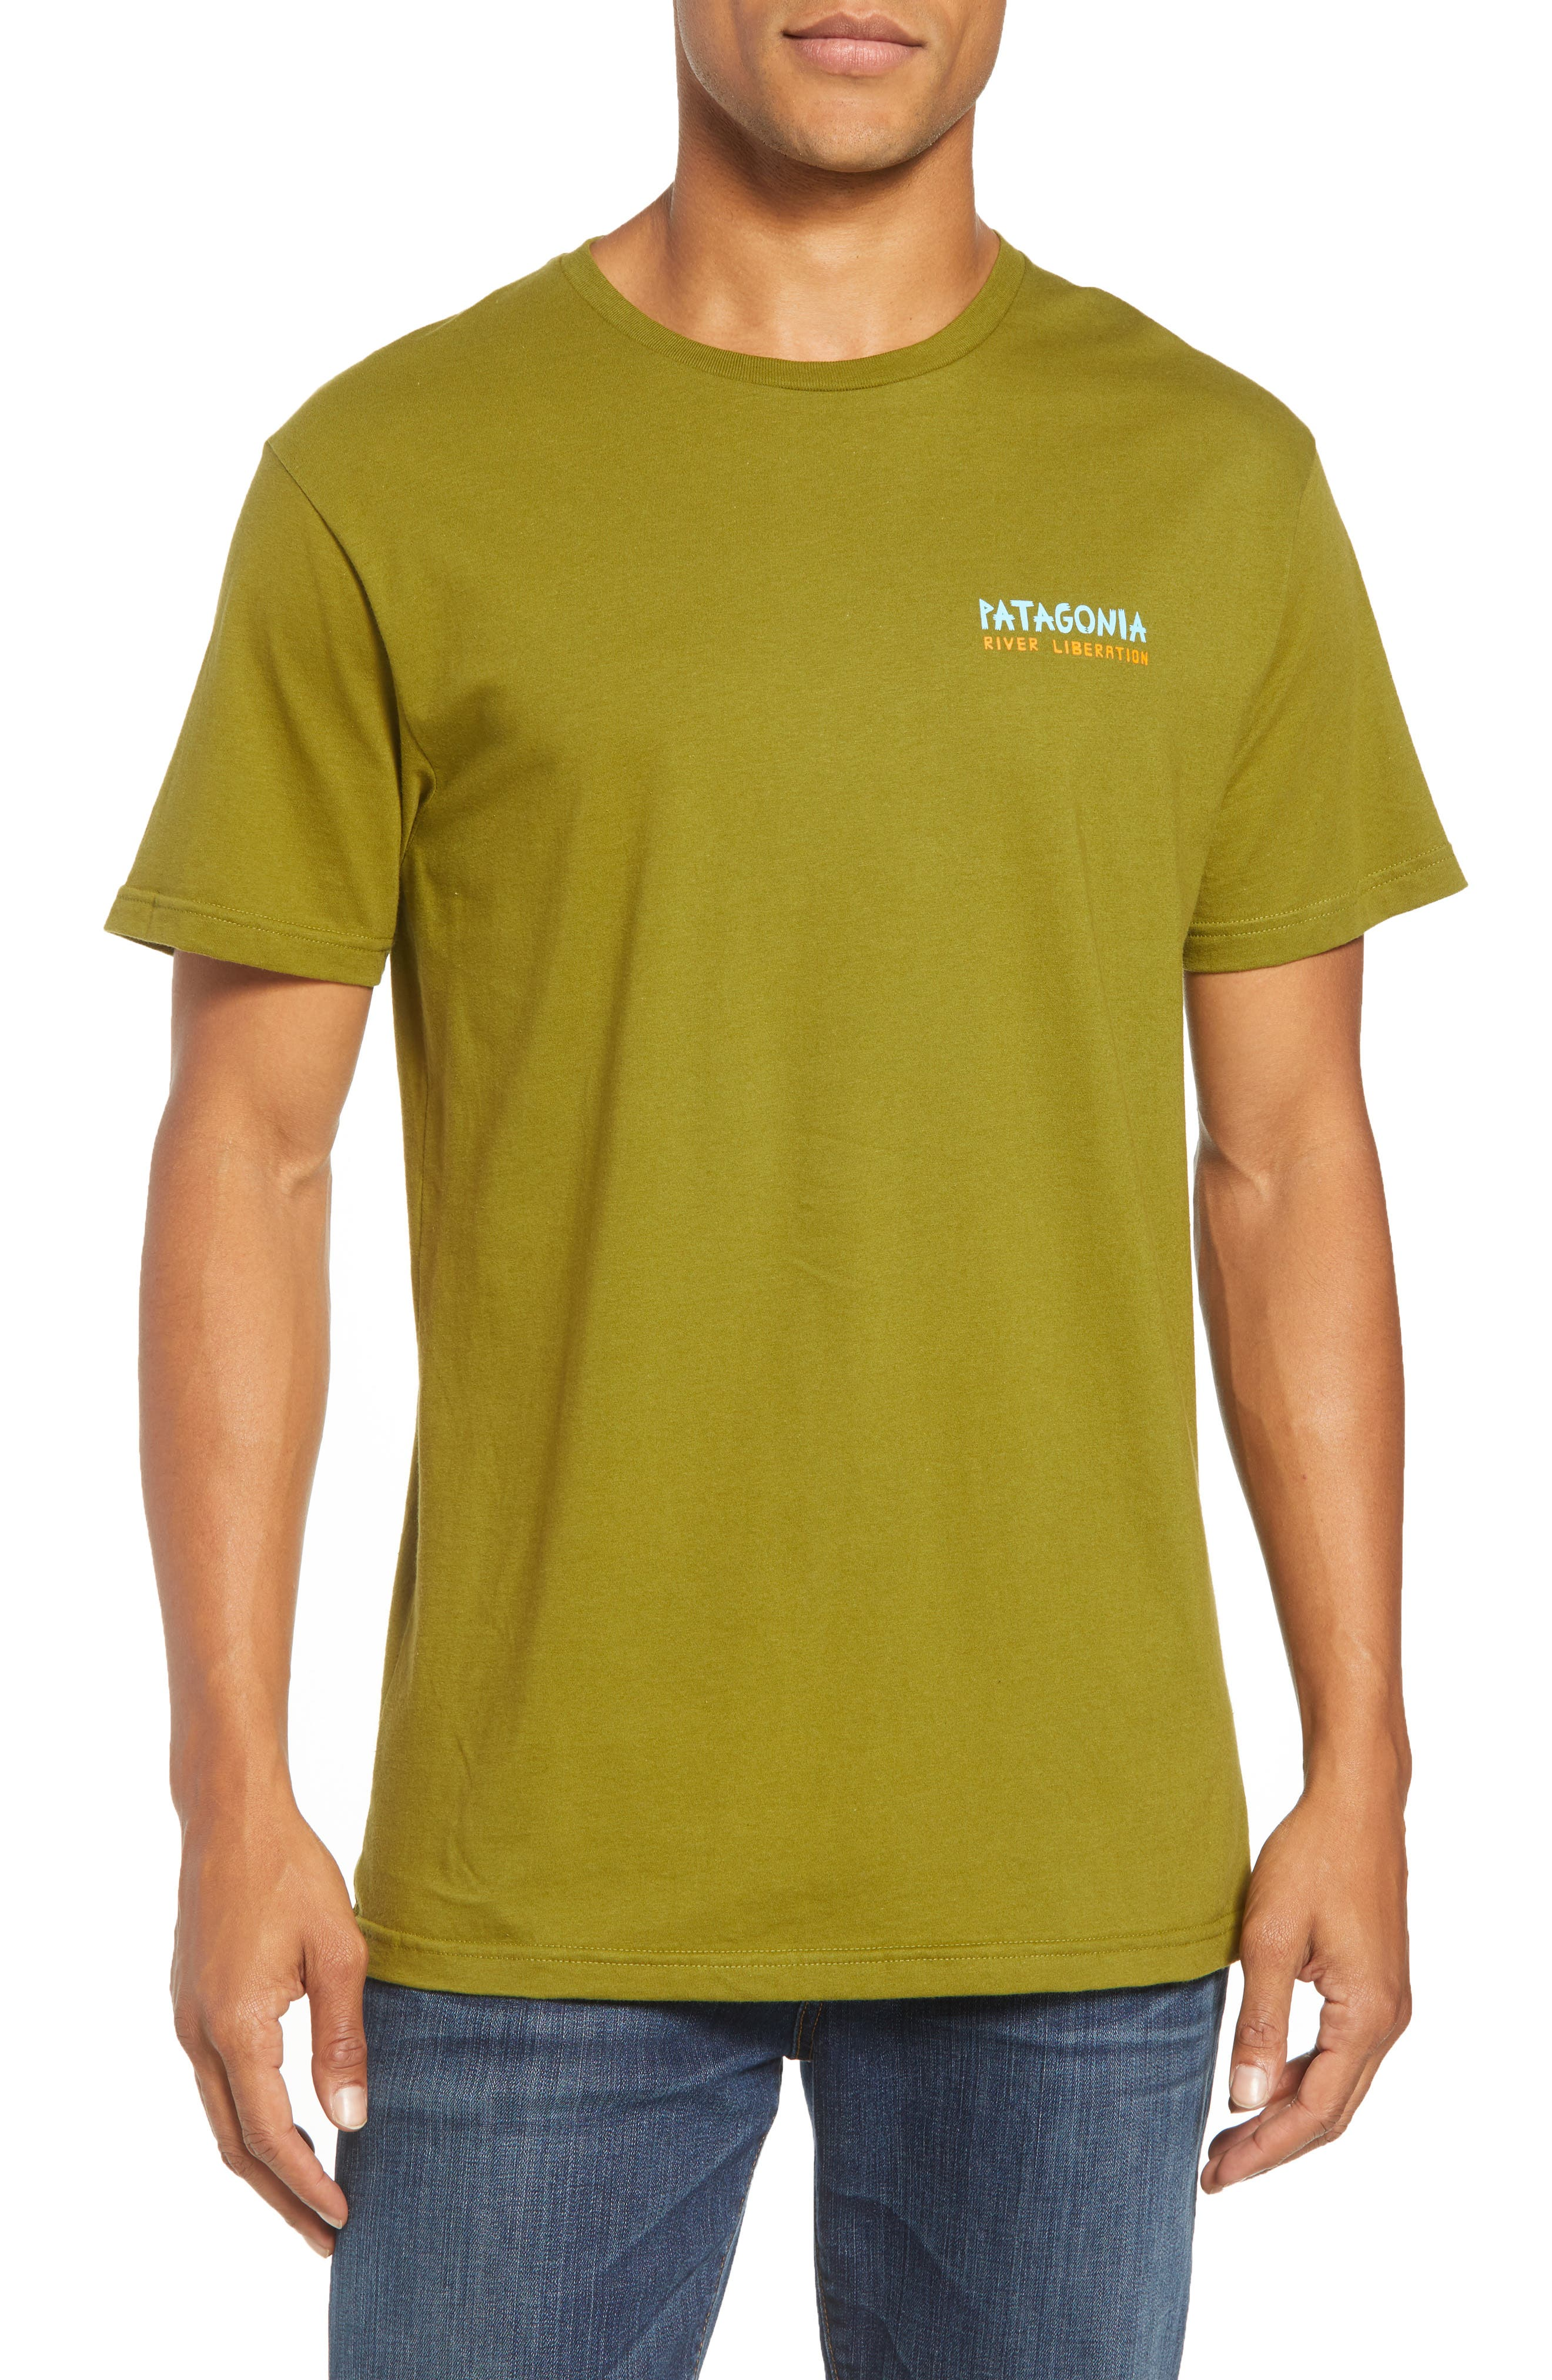 River Liberation Organic Cotton Graphic T-Shirt,                             Main thumbnail 1, color,                             WILLOW HERB GREEN